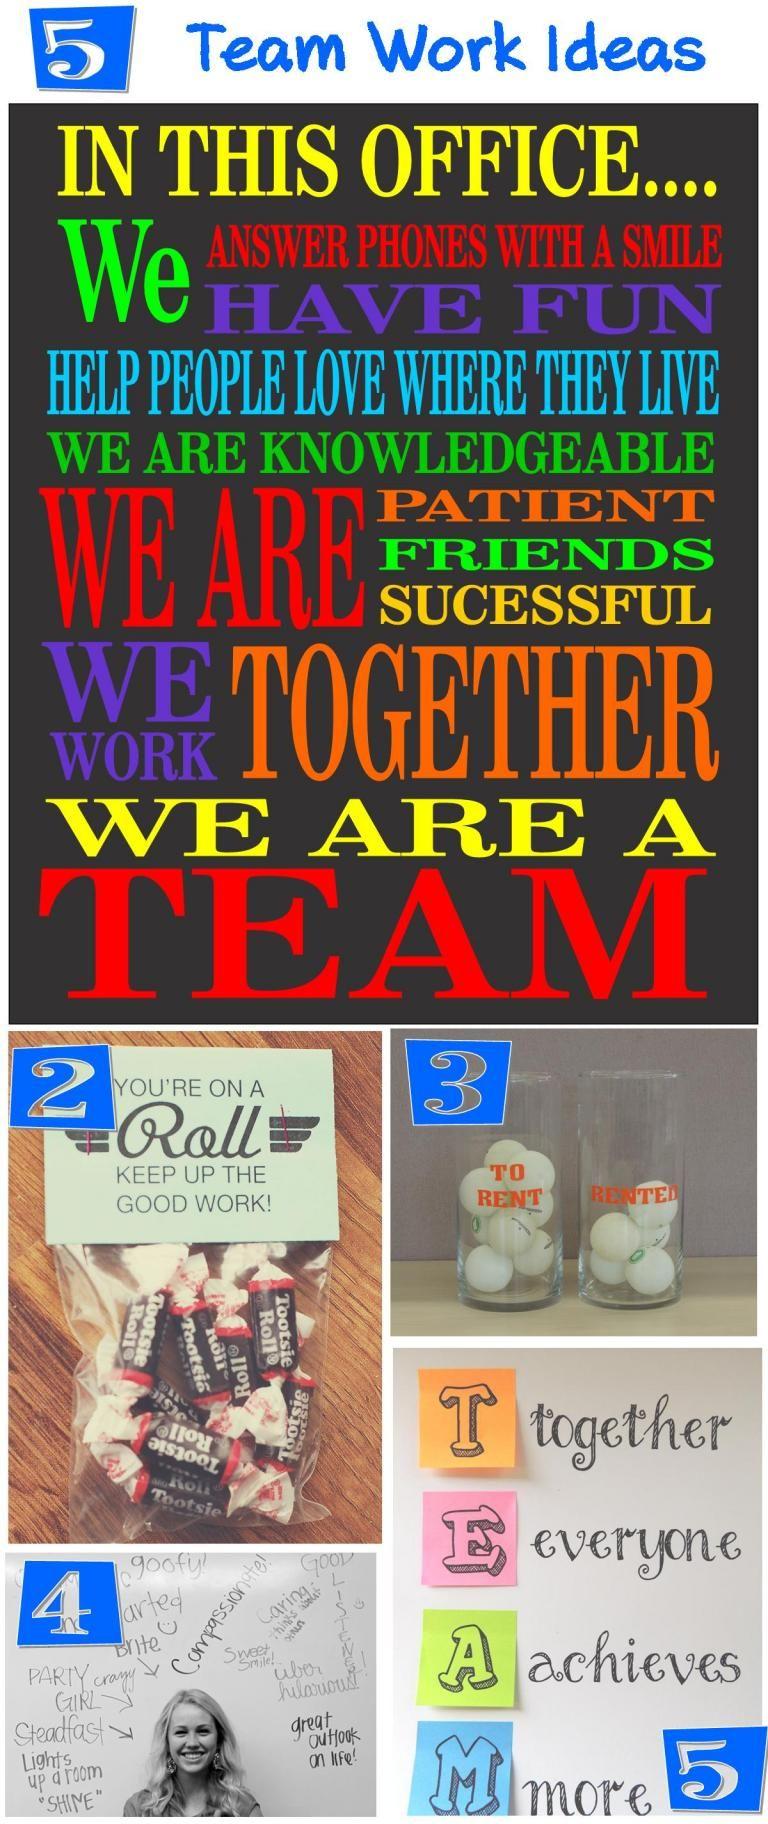 5 Ideas To Help Your Office Work as a TEAM How to